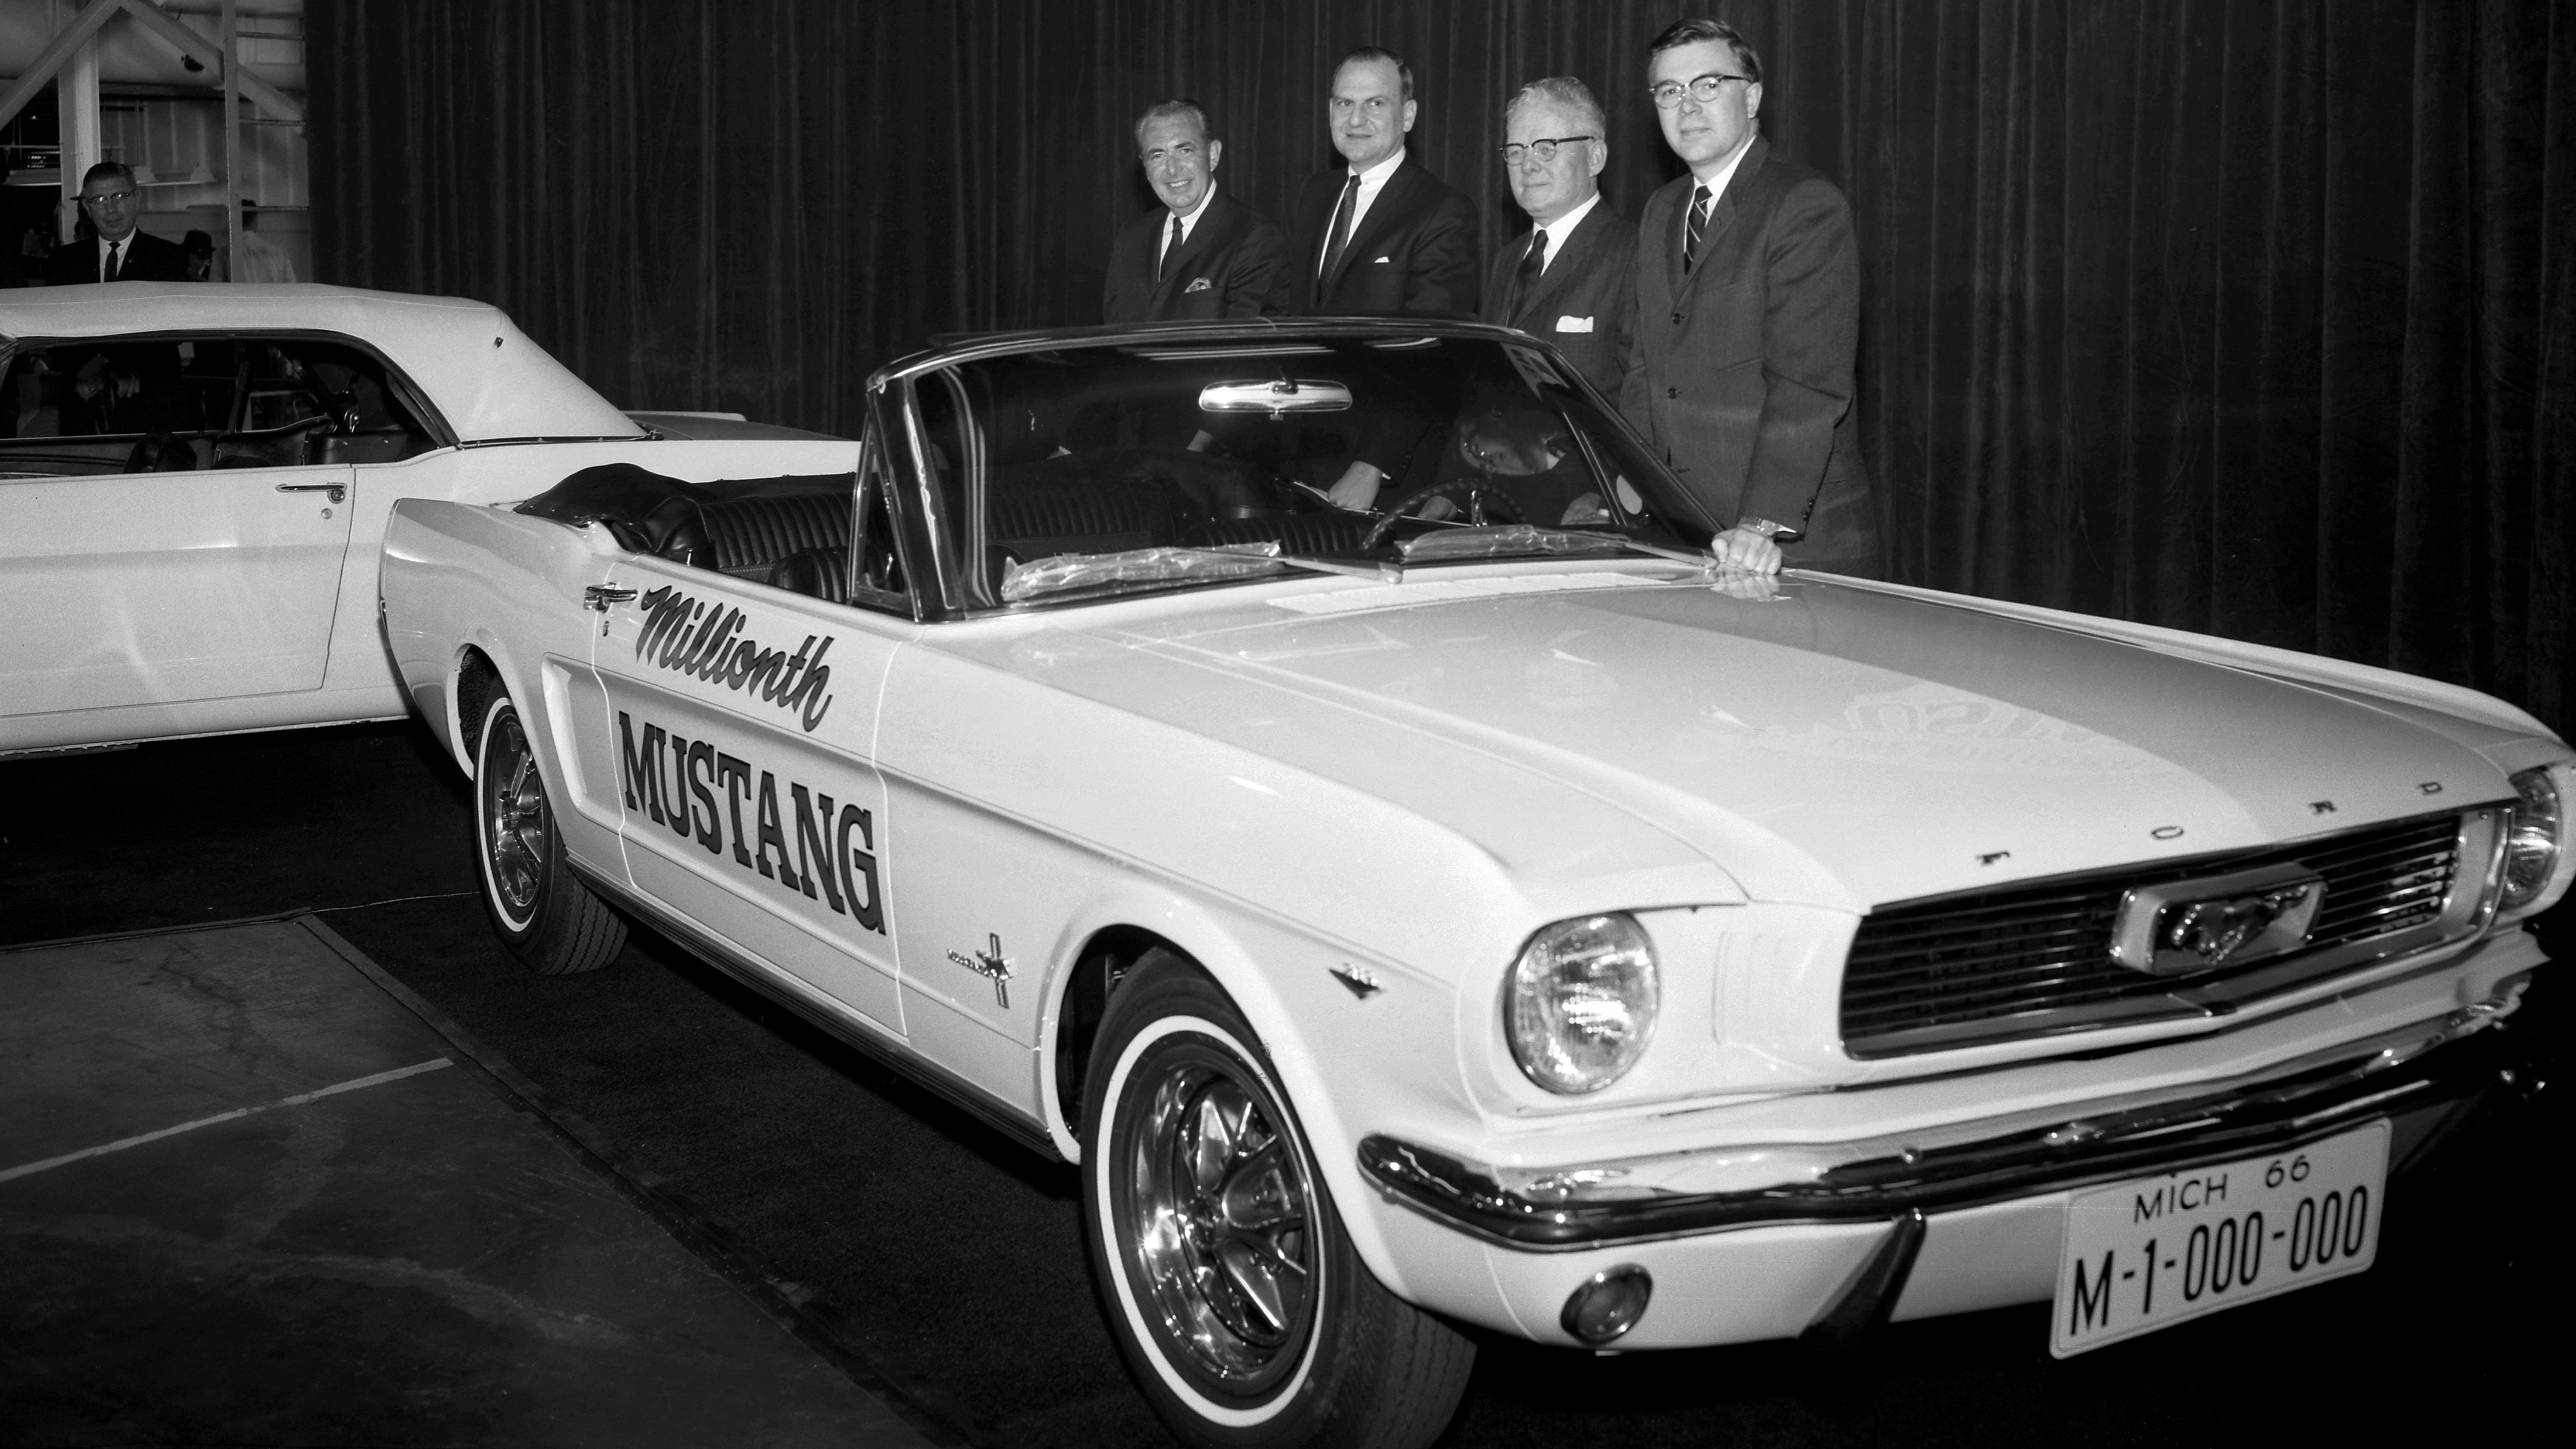 Lee iacocca father of the mustang saviour of chrysler dies age 94